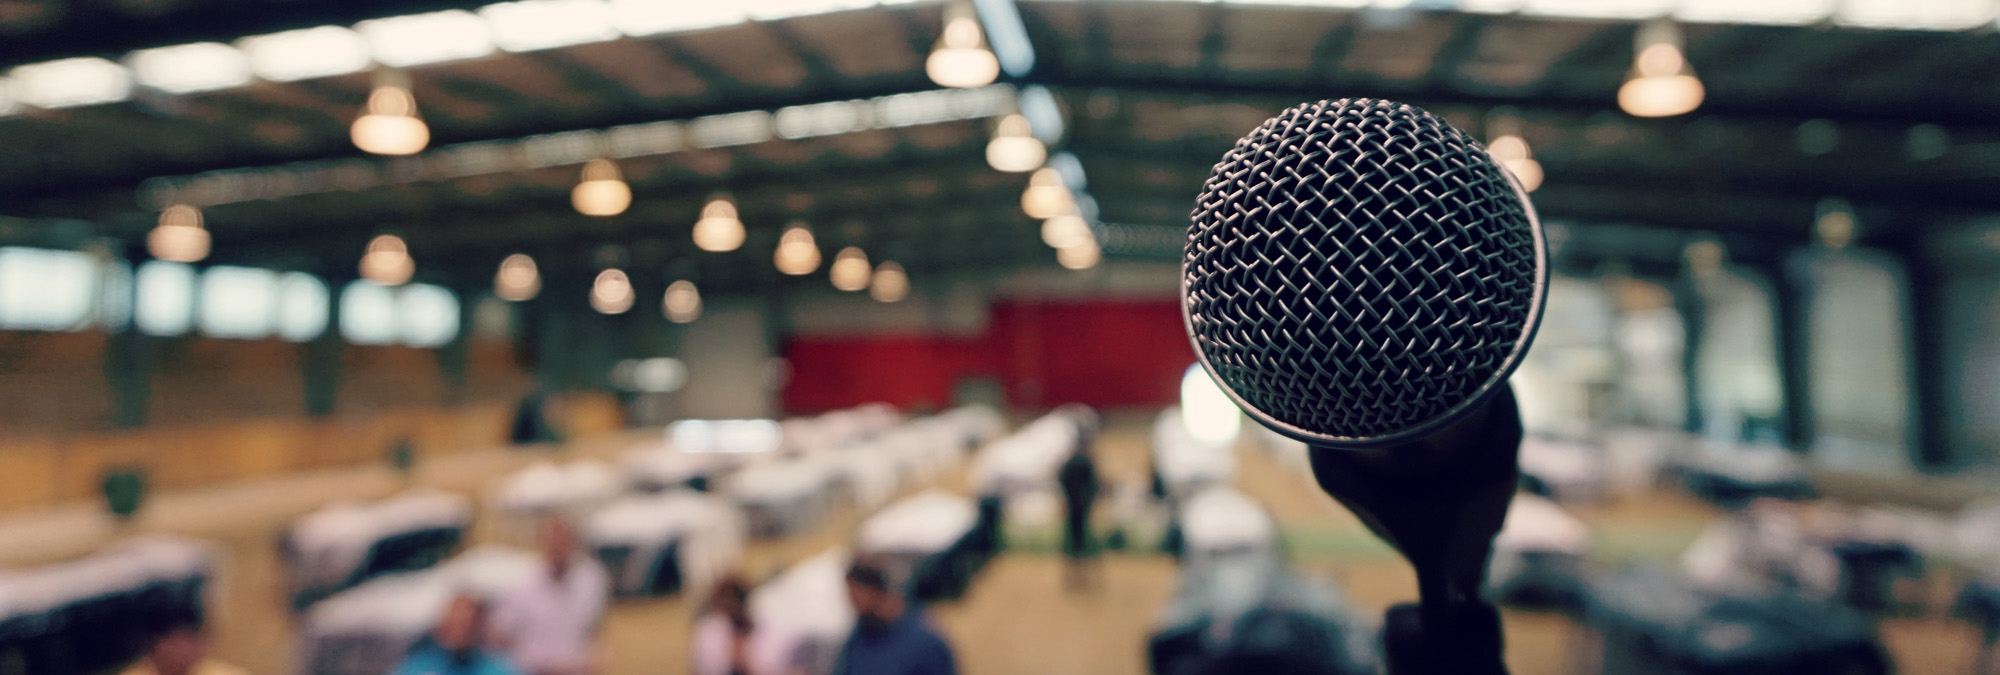 Image shows an up close shot of a microphone on stage during preparation of a big event